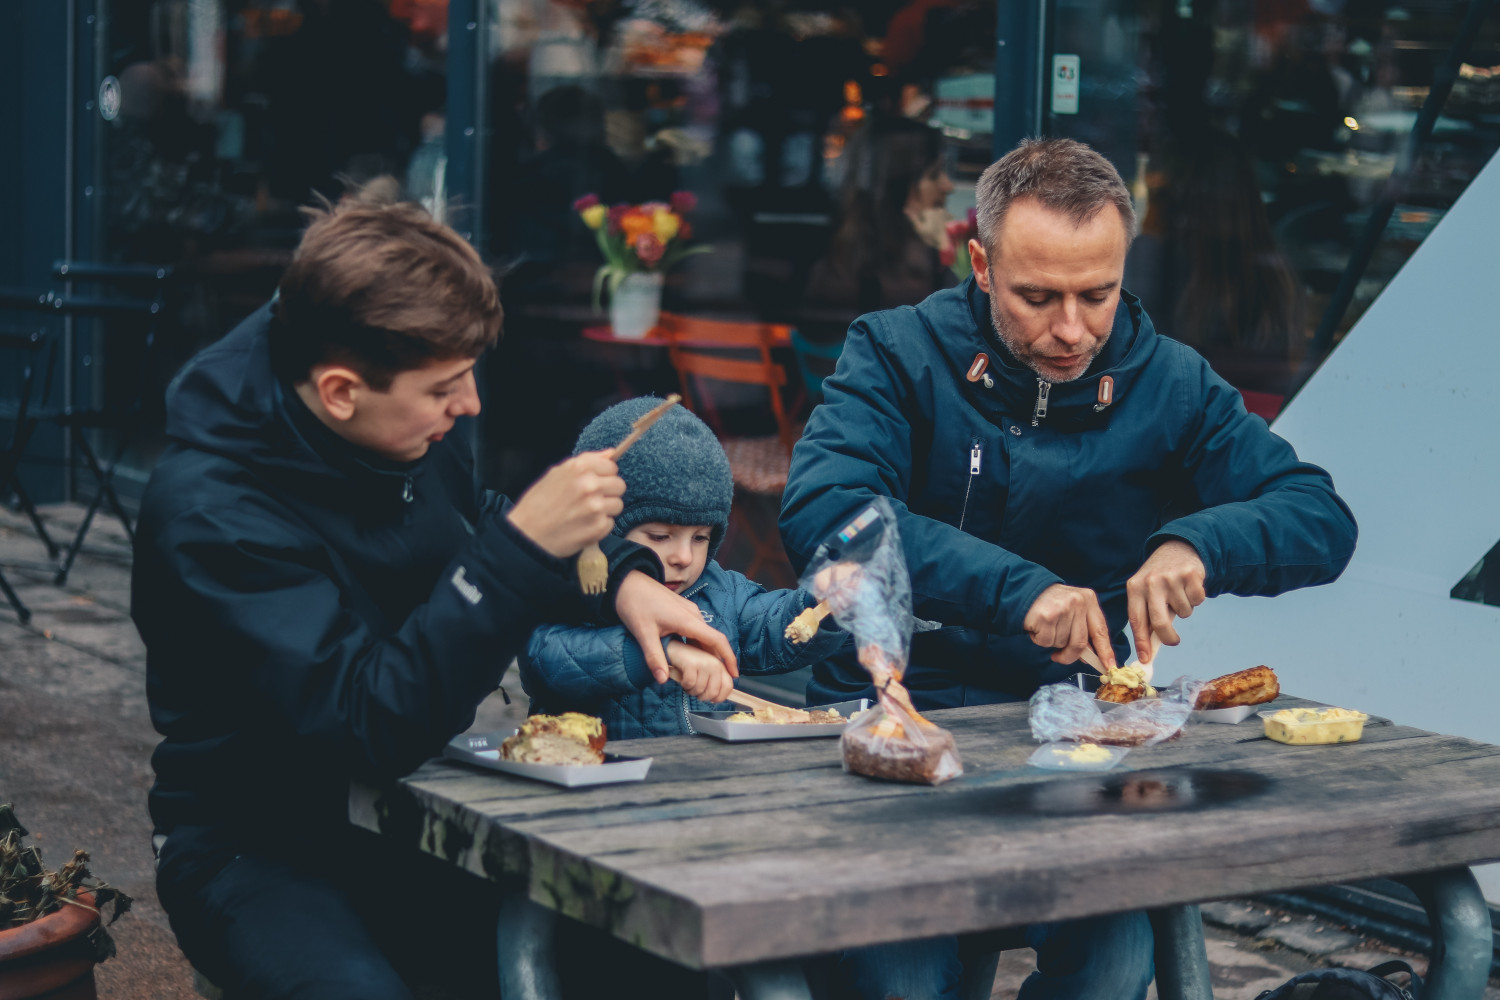 Mother, father and child eating outside